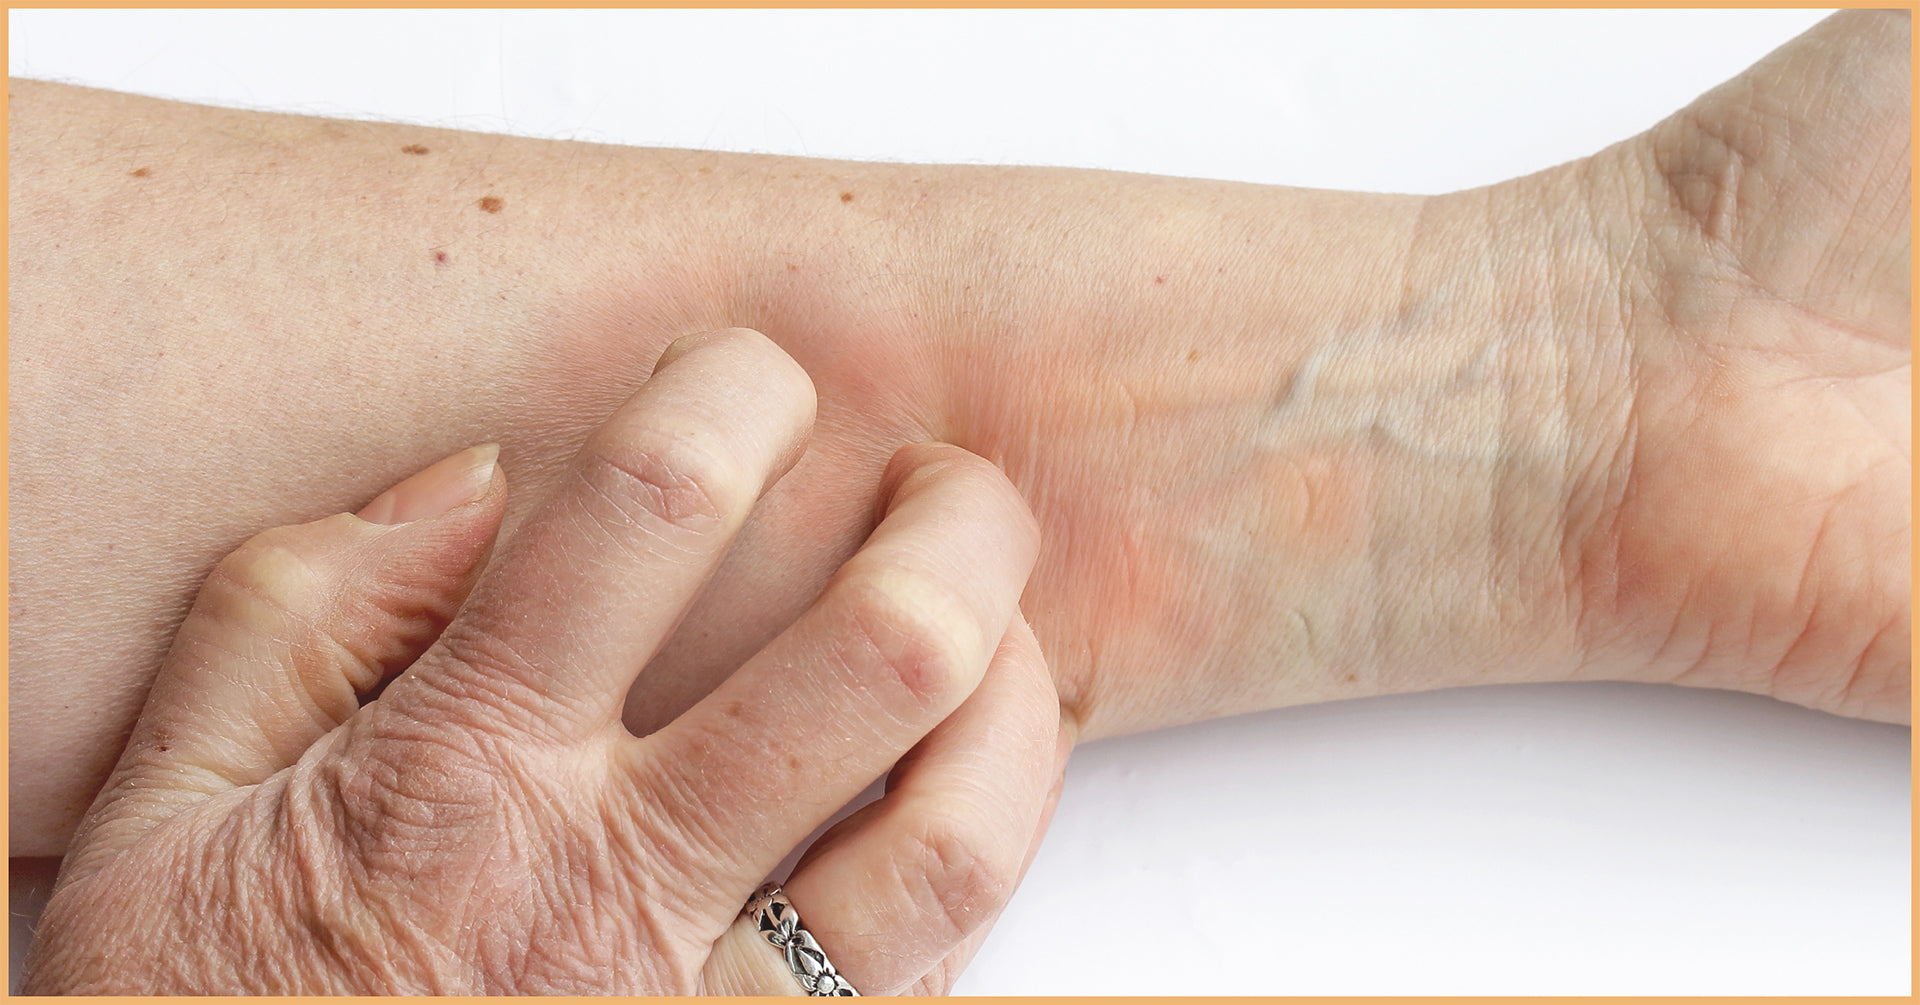 Excessive Dry Skin and Itchy Xerosis